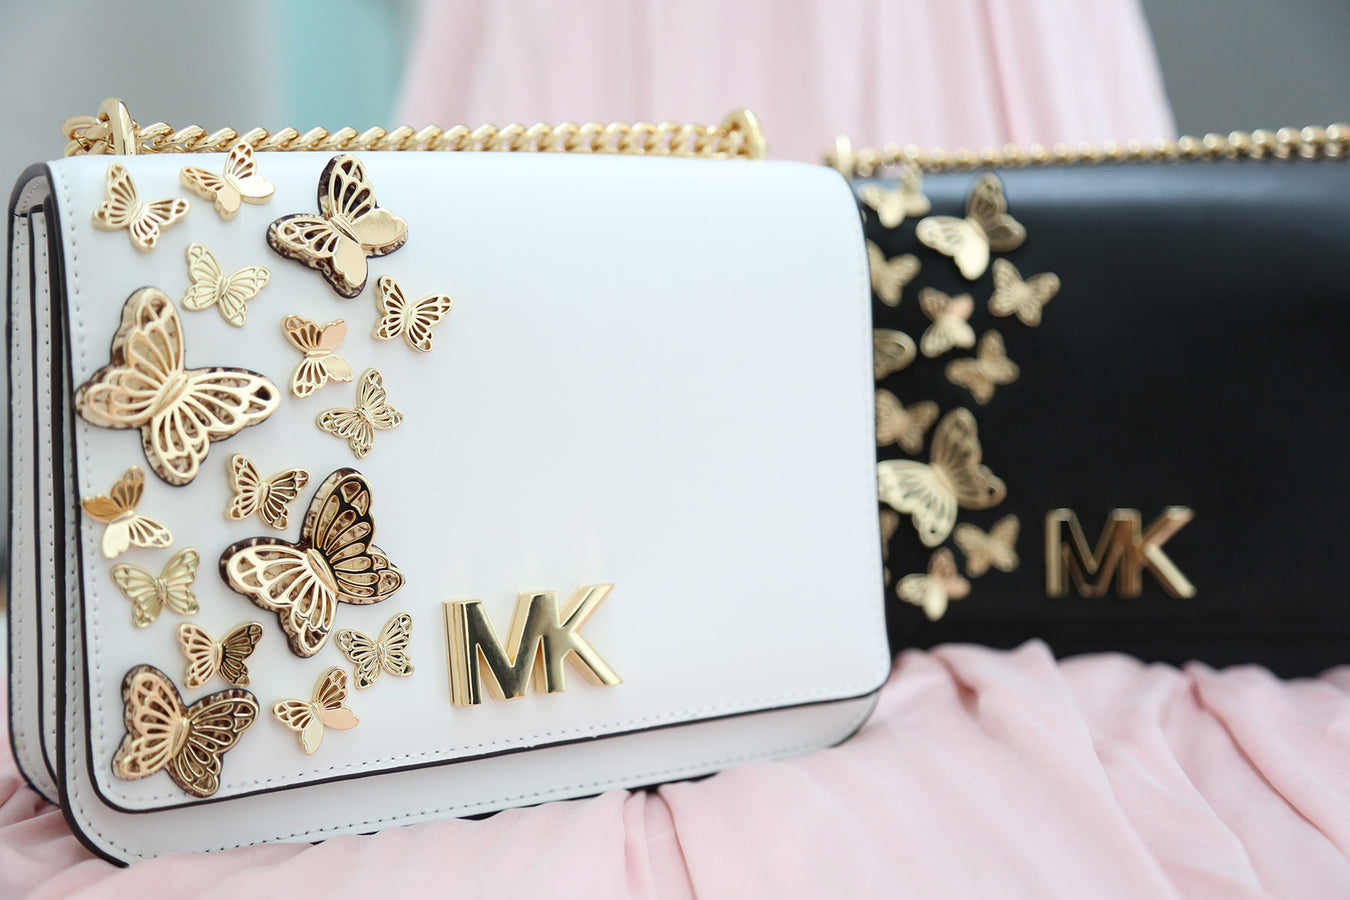 Michael Kors leather cross body bag with butterfly applique in white & black